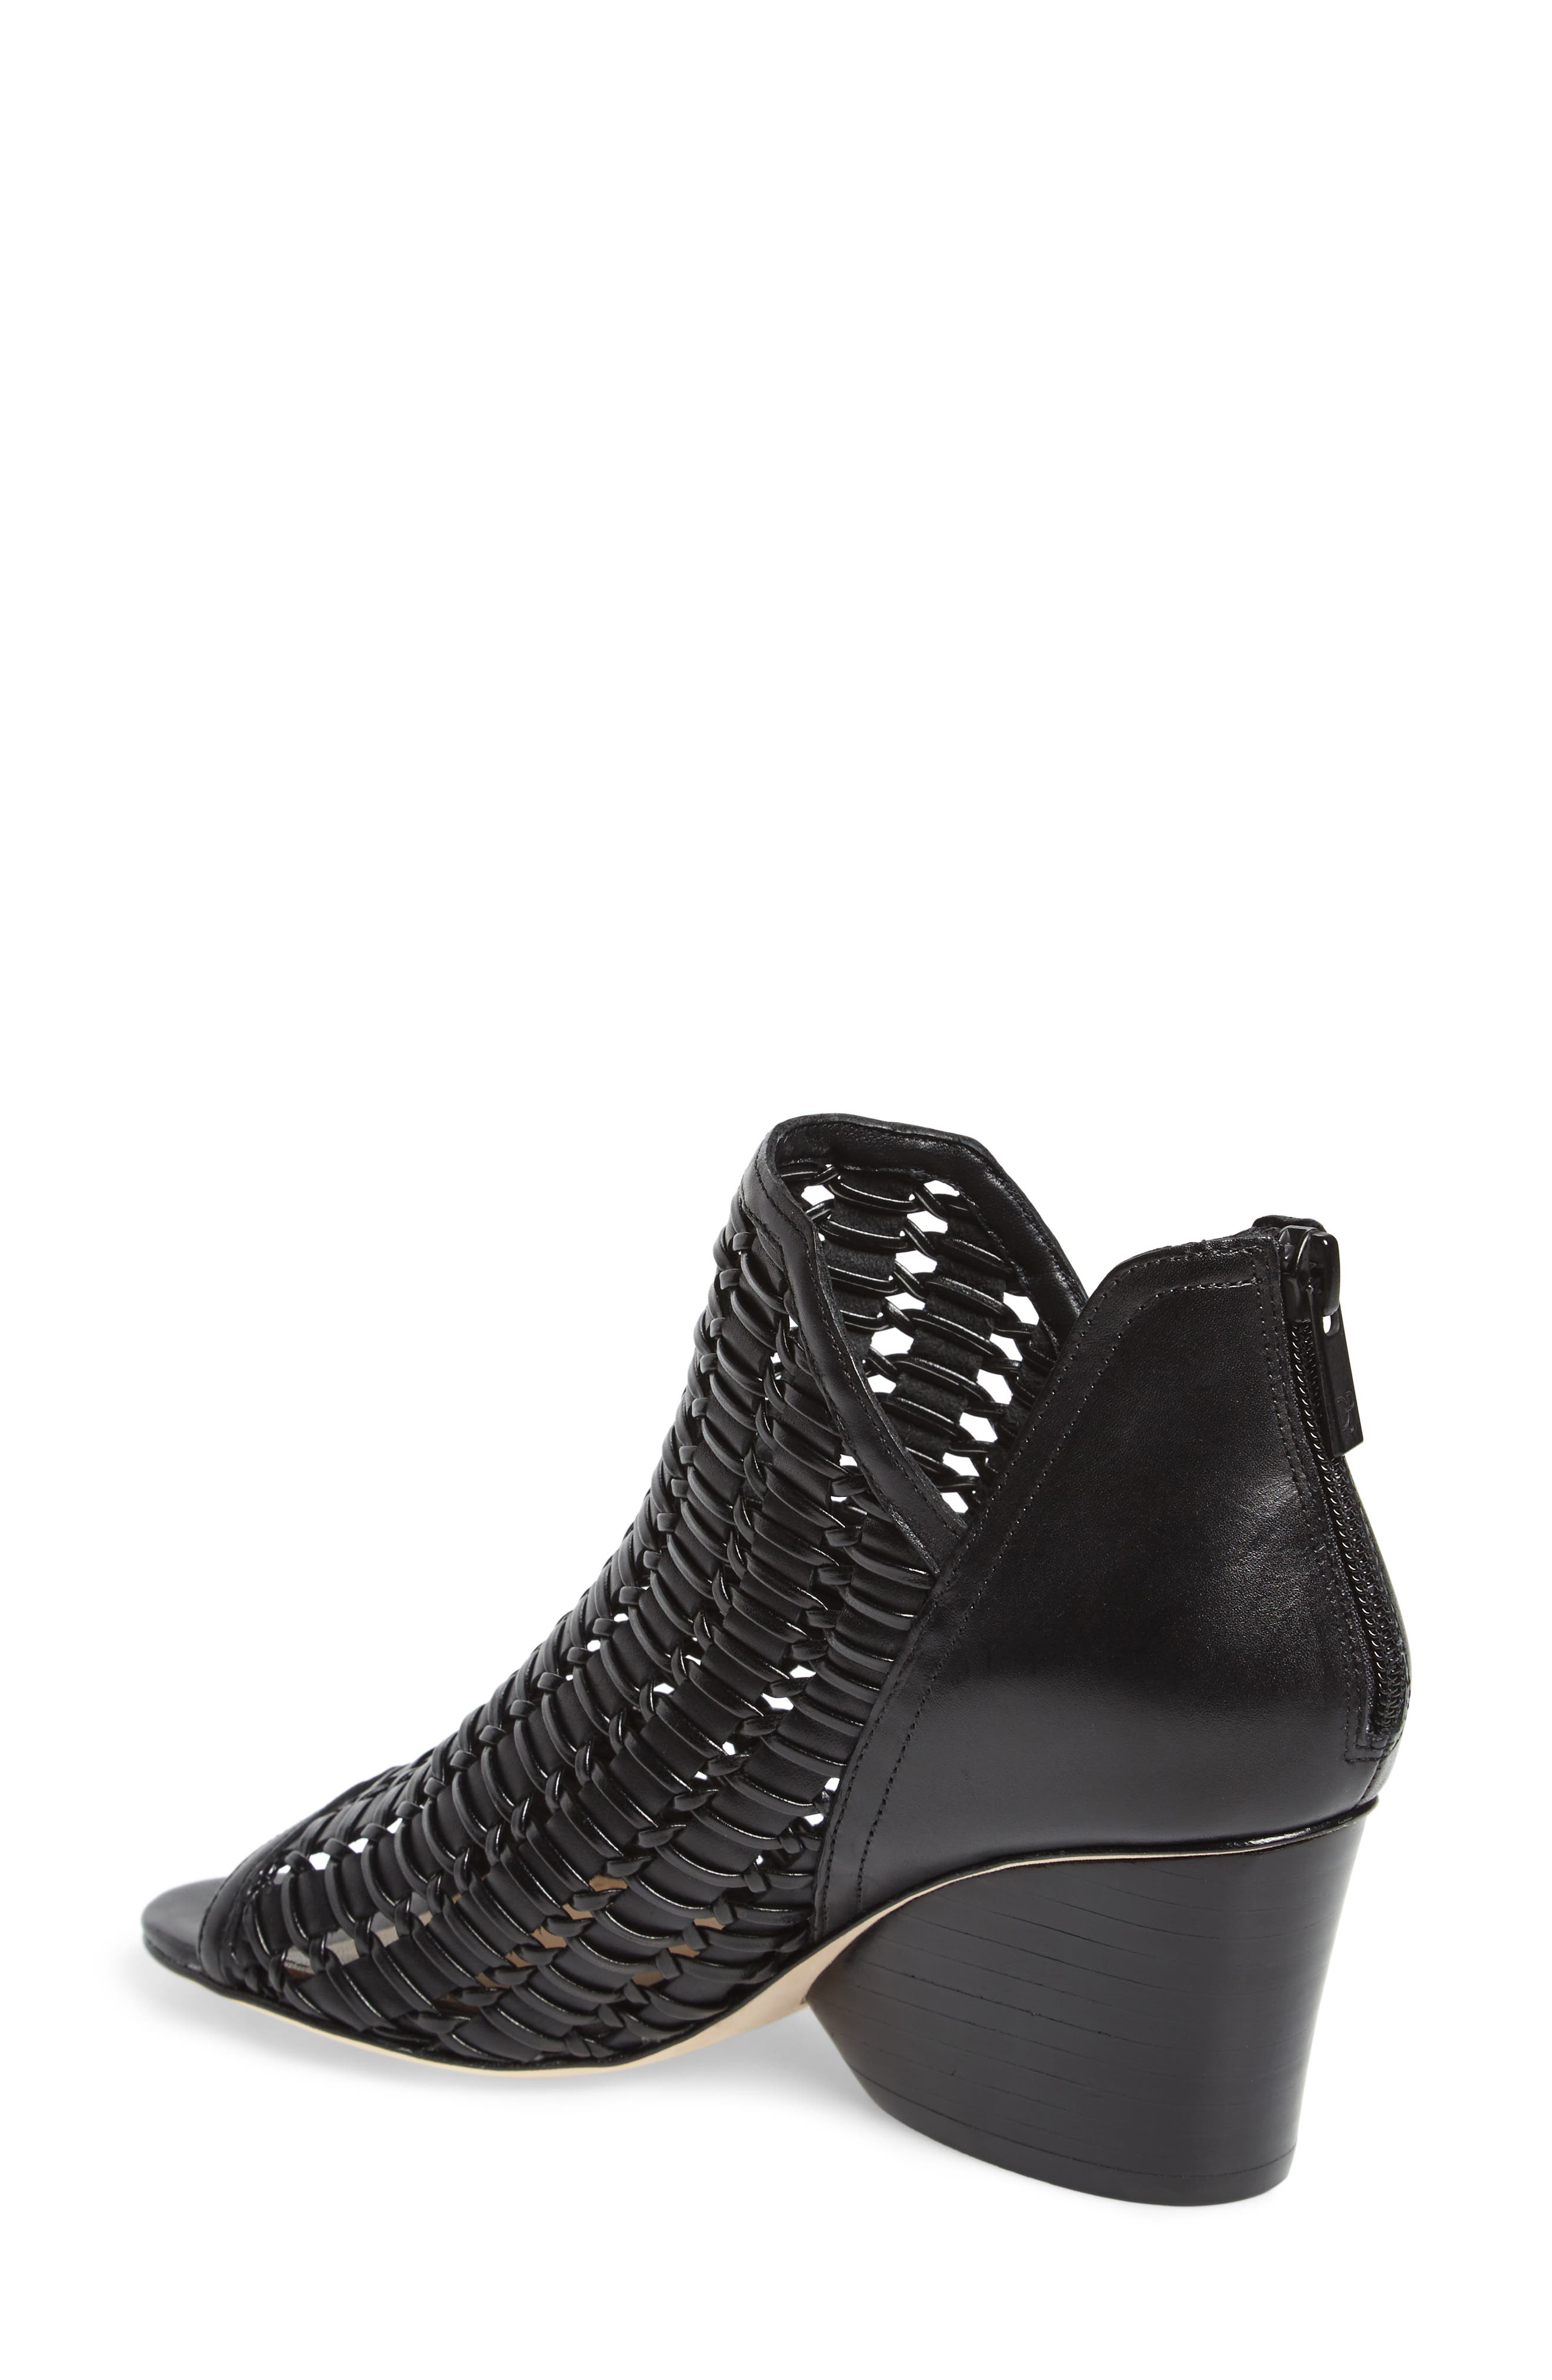 Jacqi Woven Open Toe Bootie,                             Alternate thumbnail 2, color,                             Black Leather